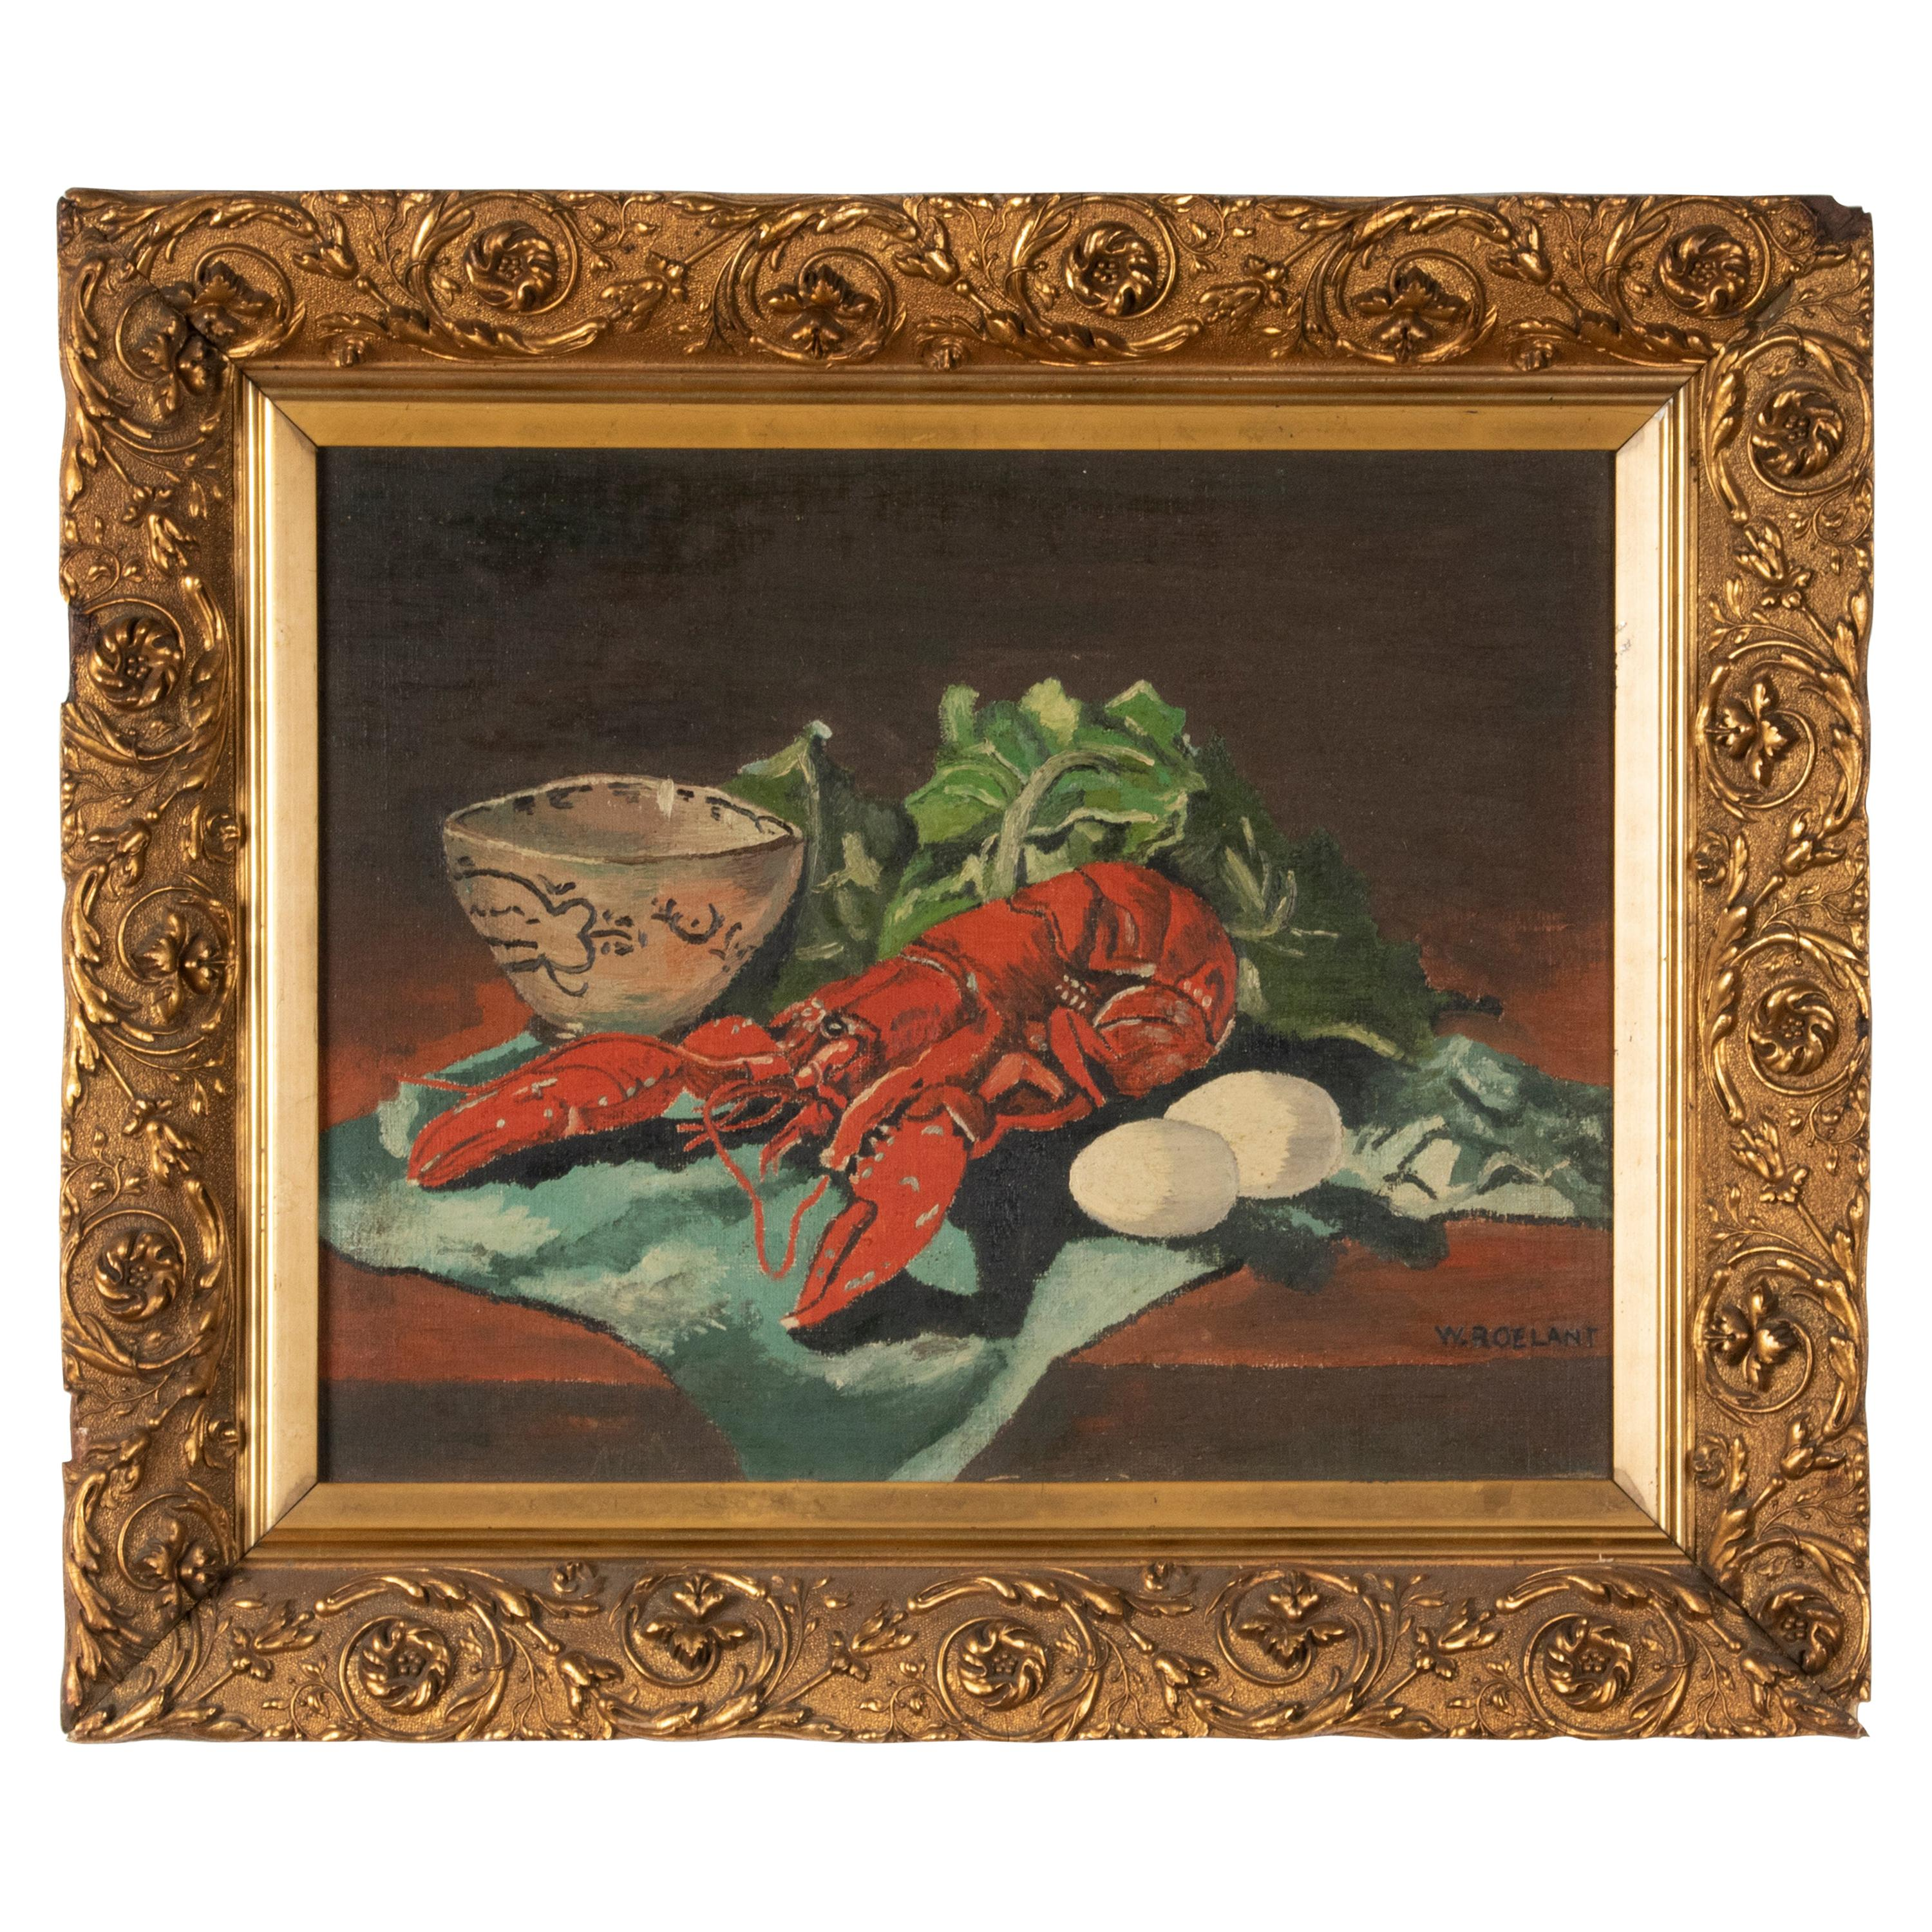 Early 20th Century Classic Oil Painting by W. Roelant Still Life Lobster